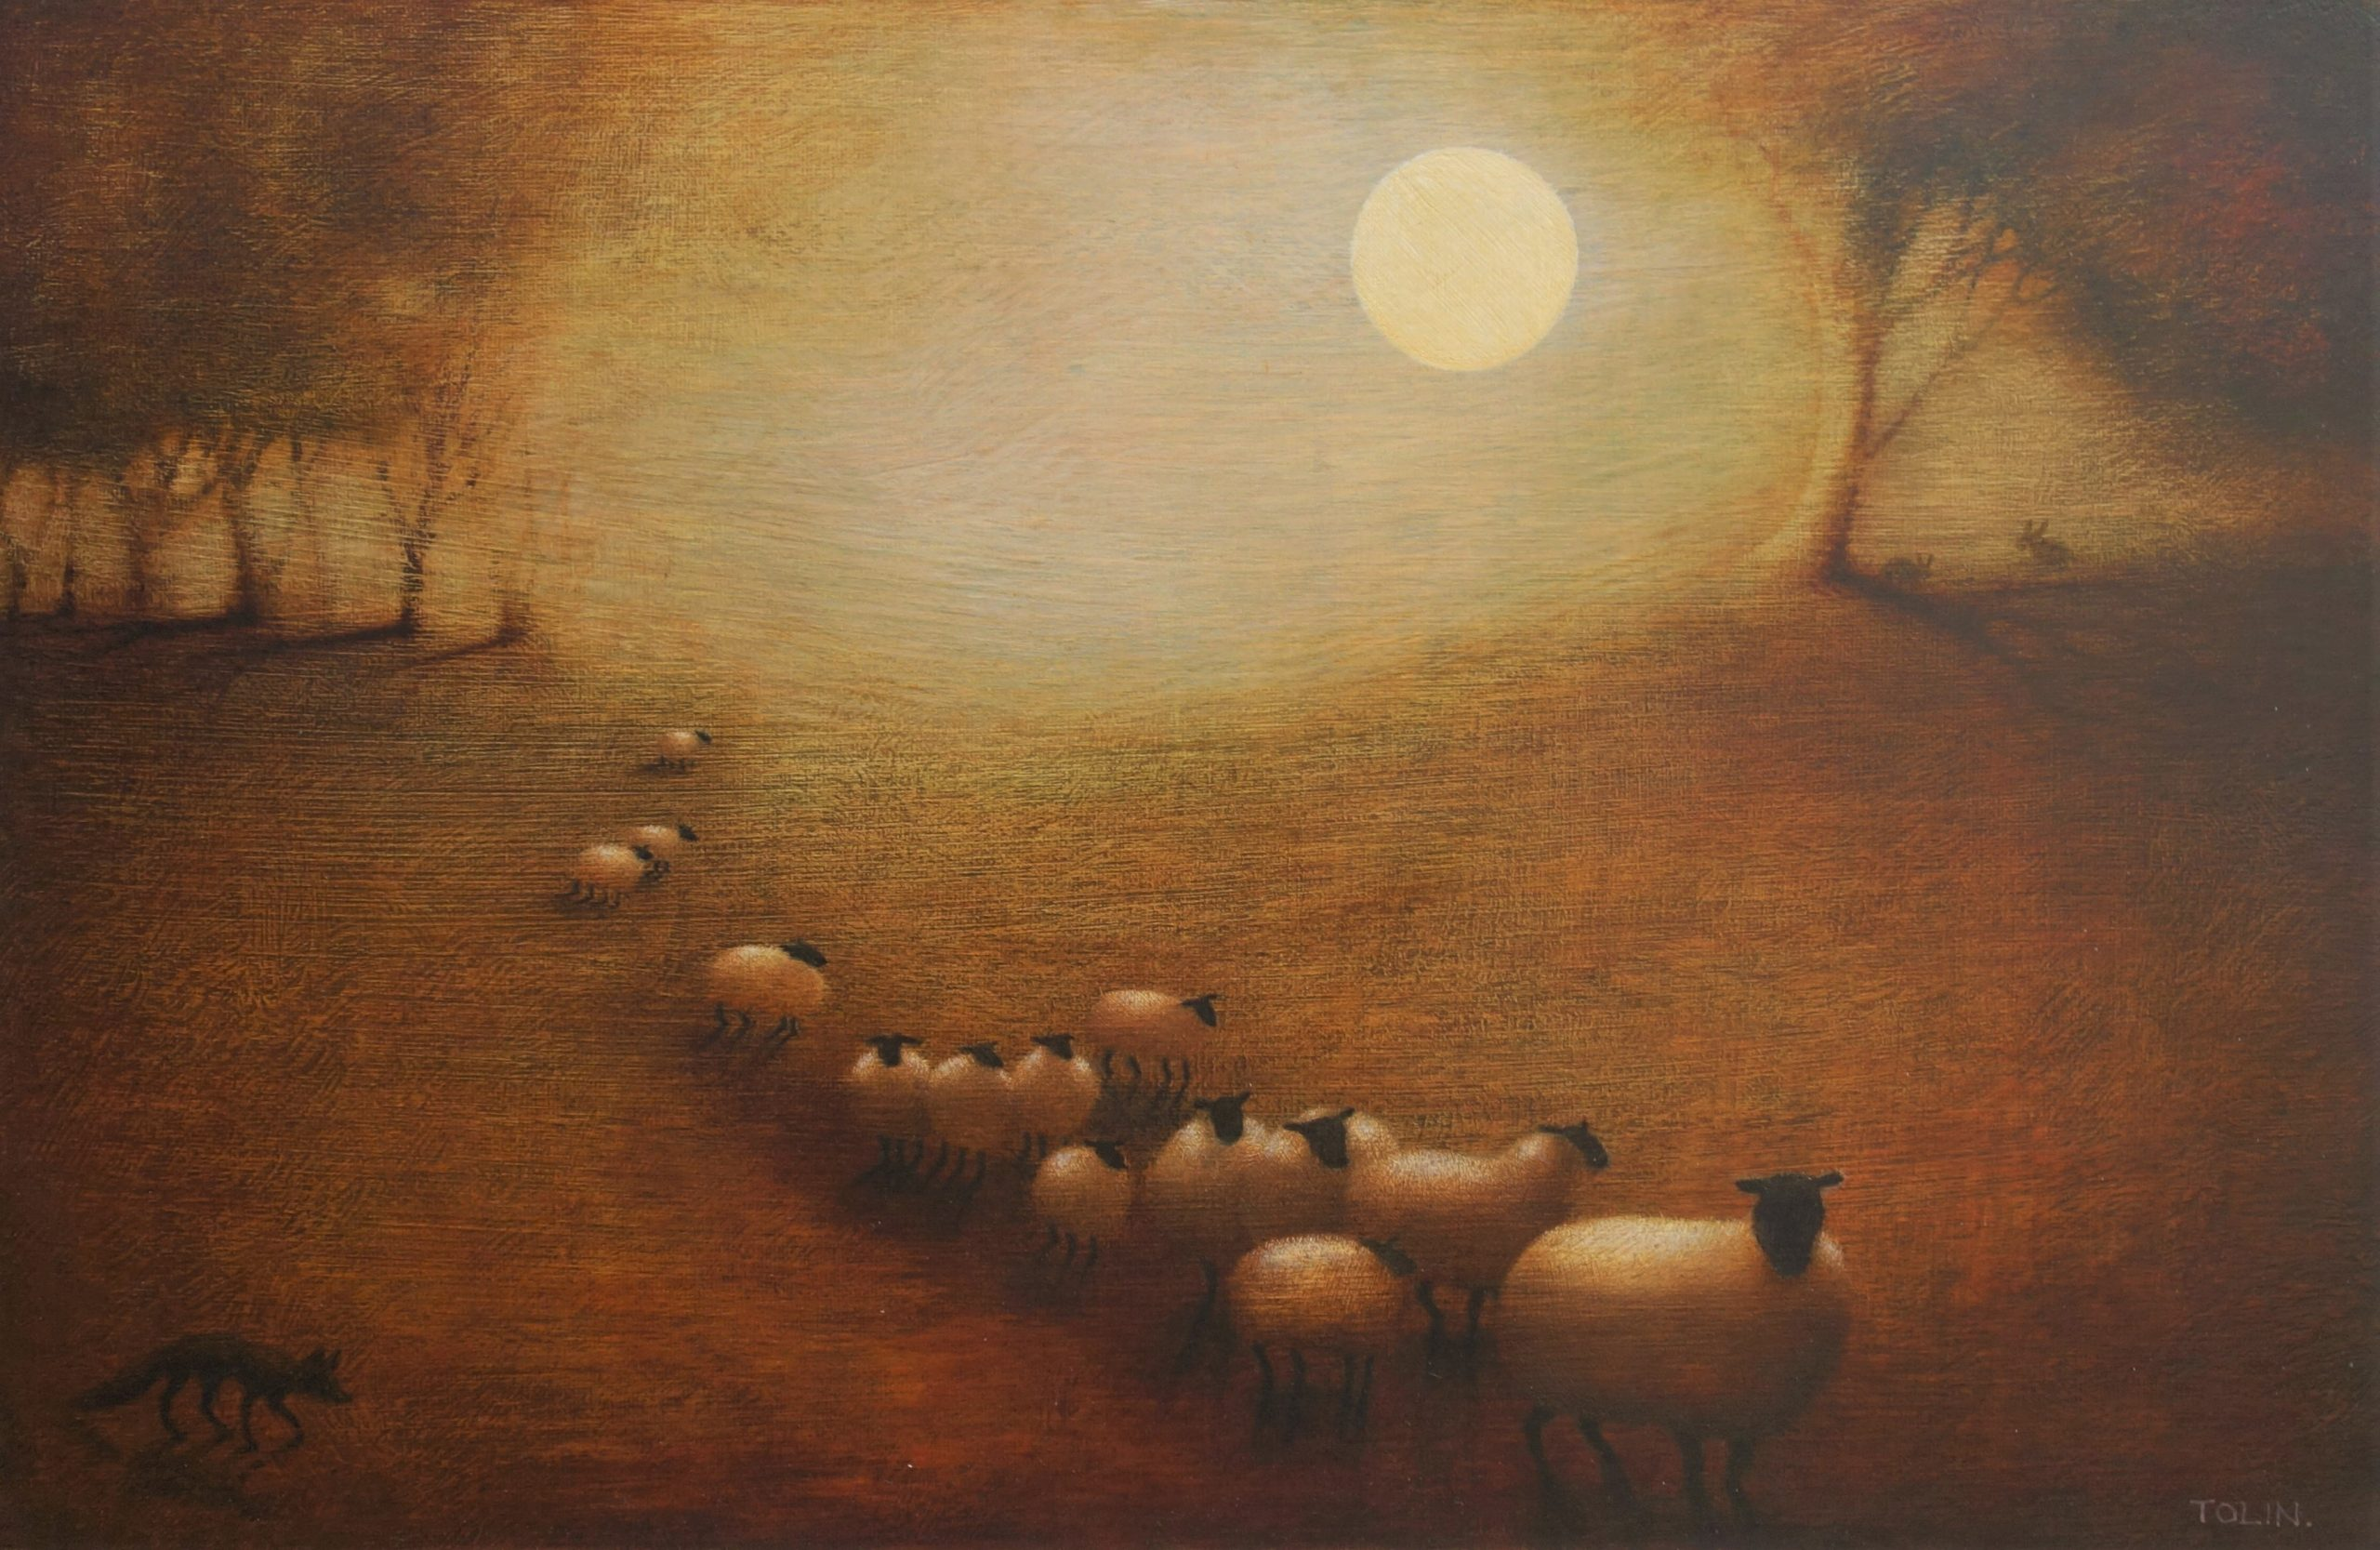 A flock of sheep by moonlight